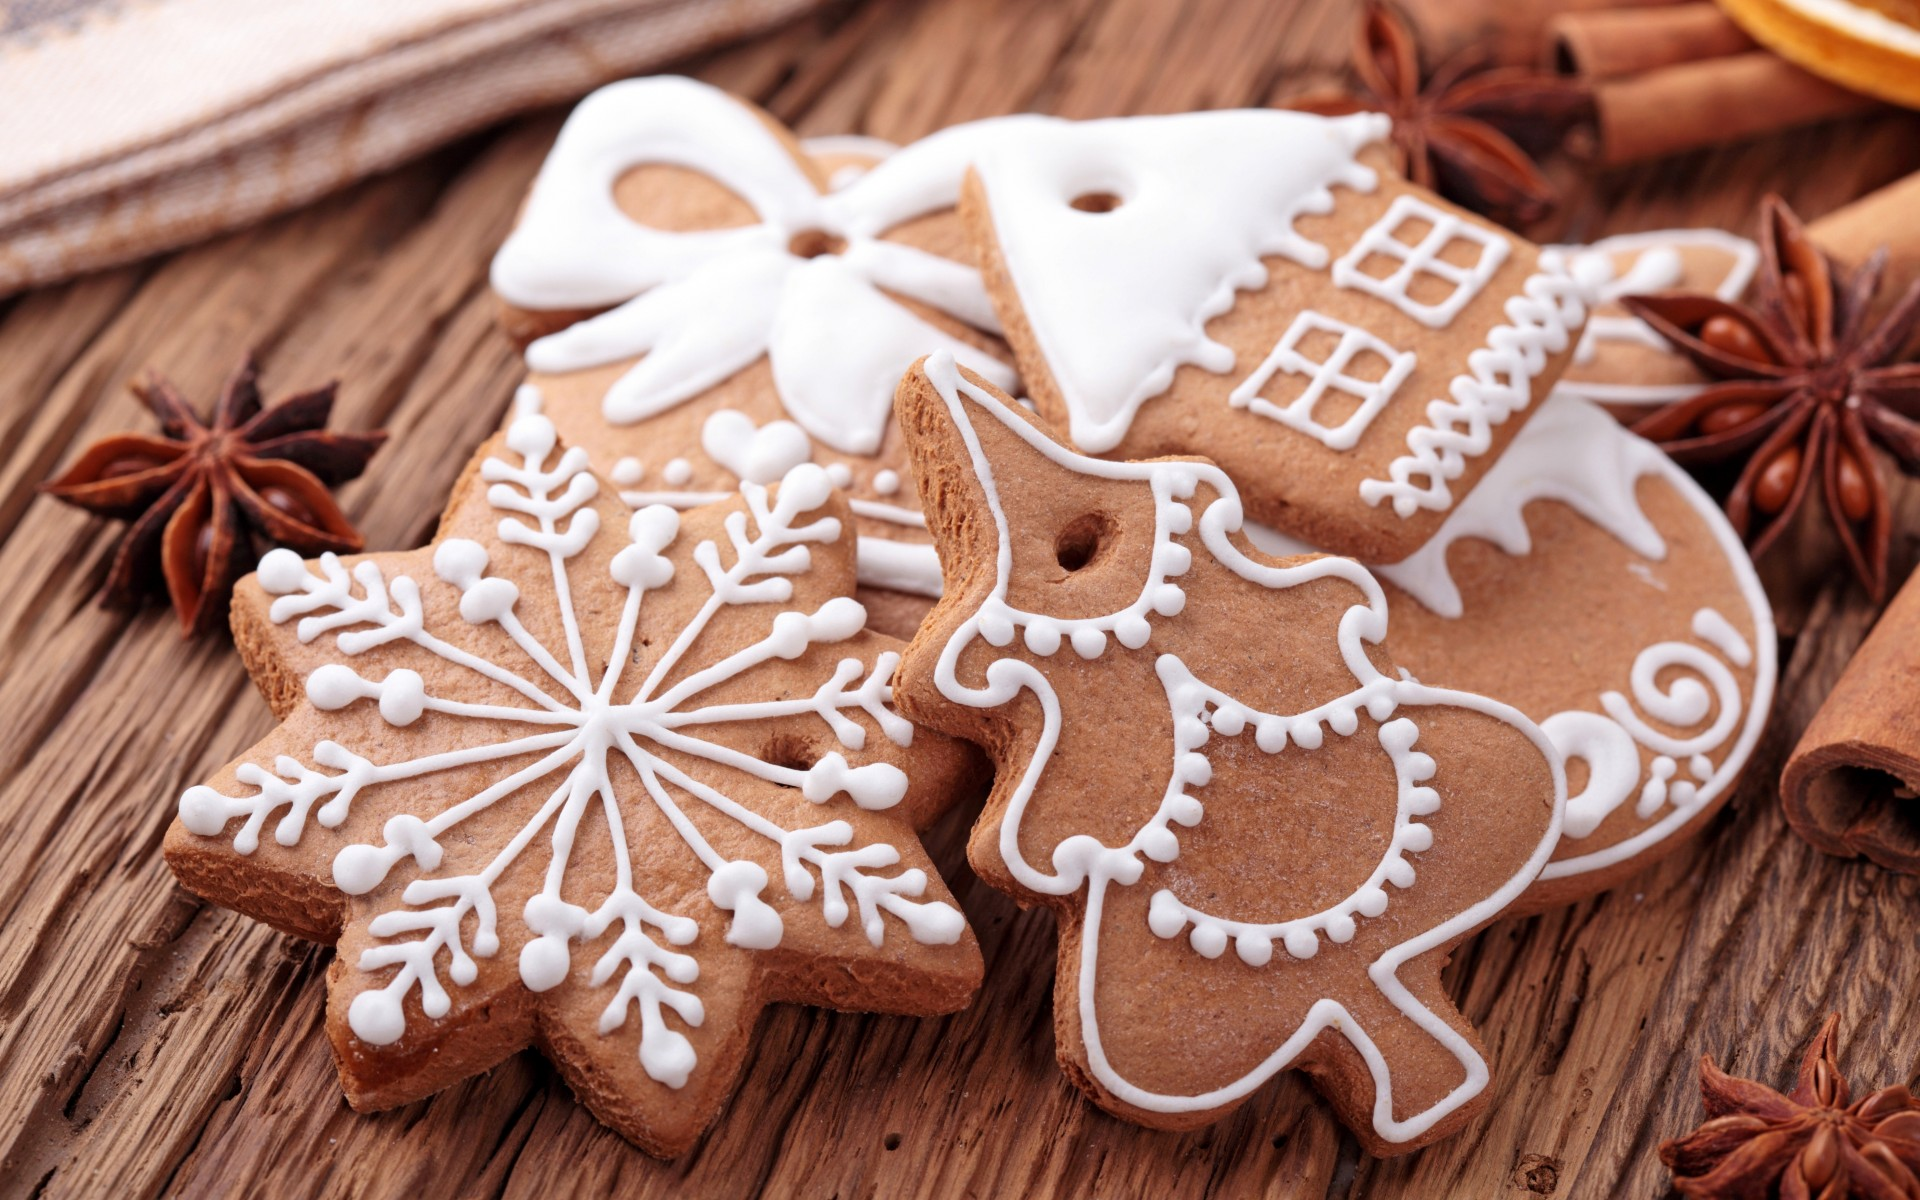 Fantastic Christmas Cookies Wallpaper 40514 1920x1200 px